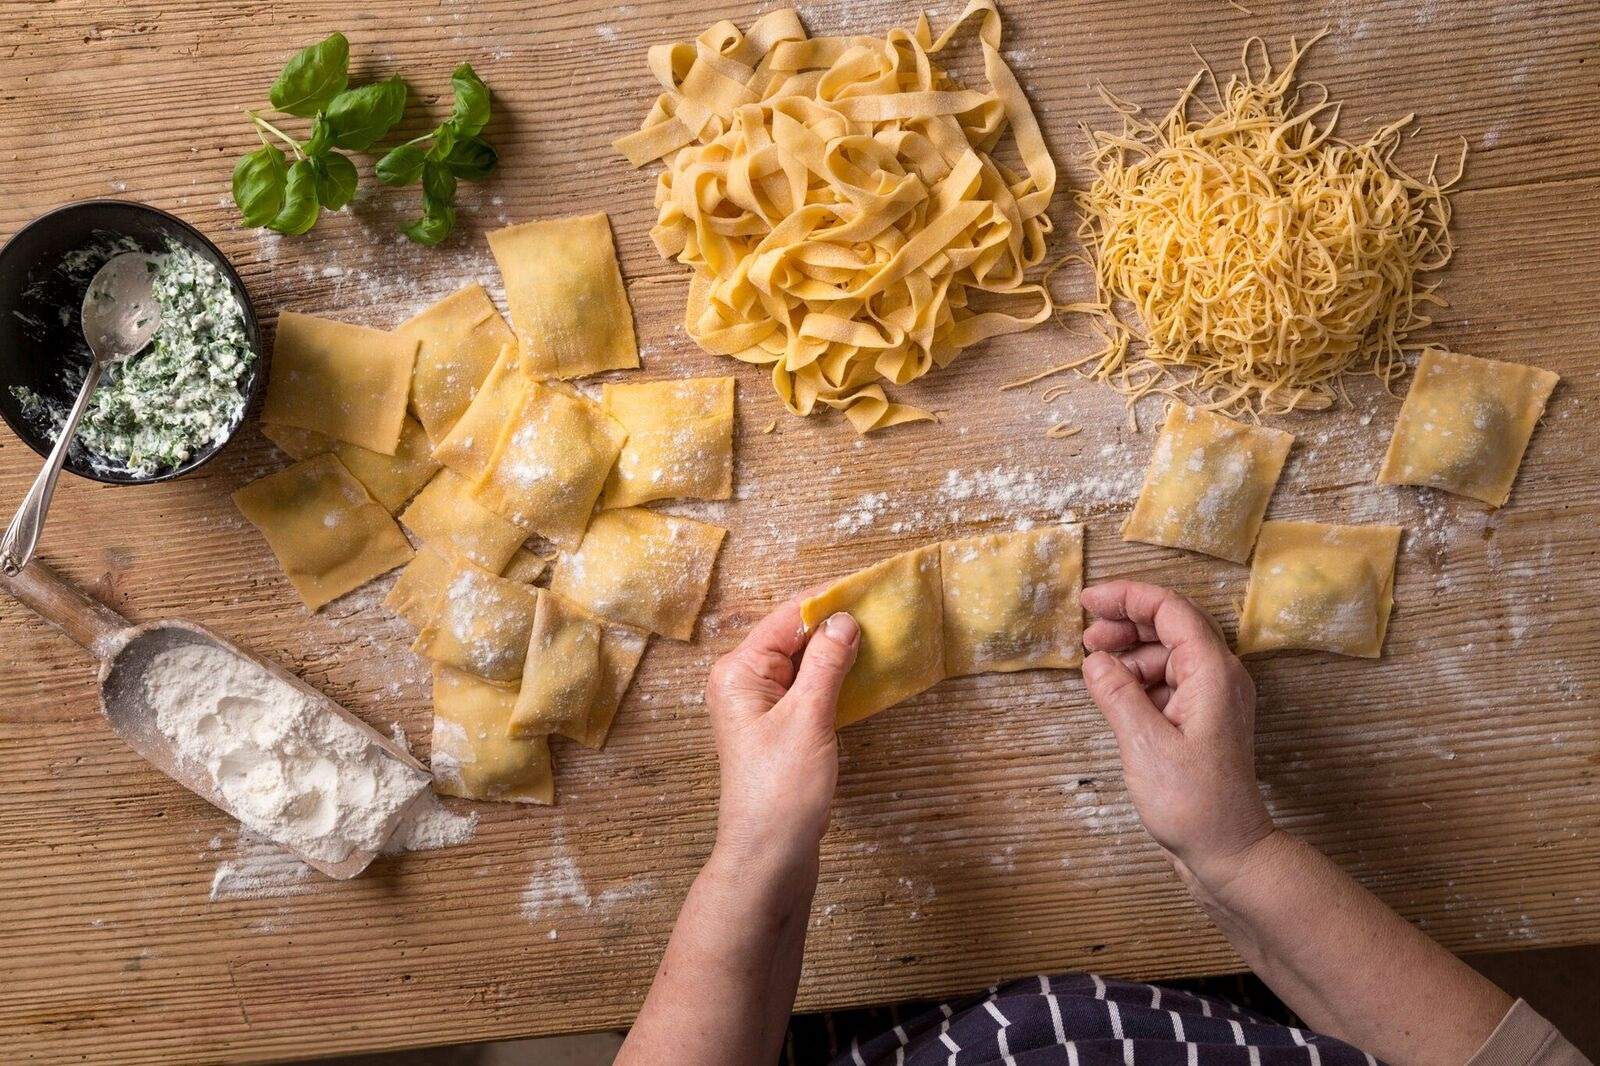 Quality ingredients and authentic preparation methods are kings of the kitchen at this local pasta paradise.